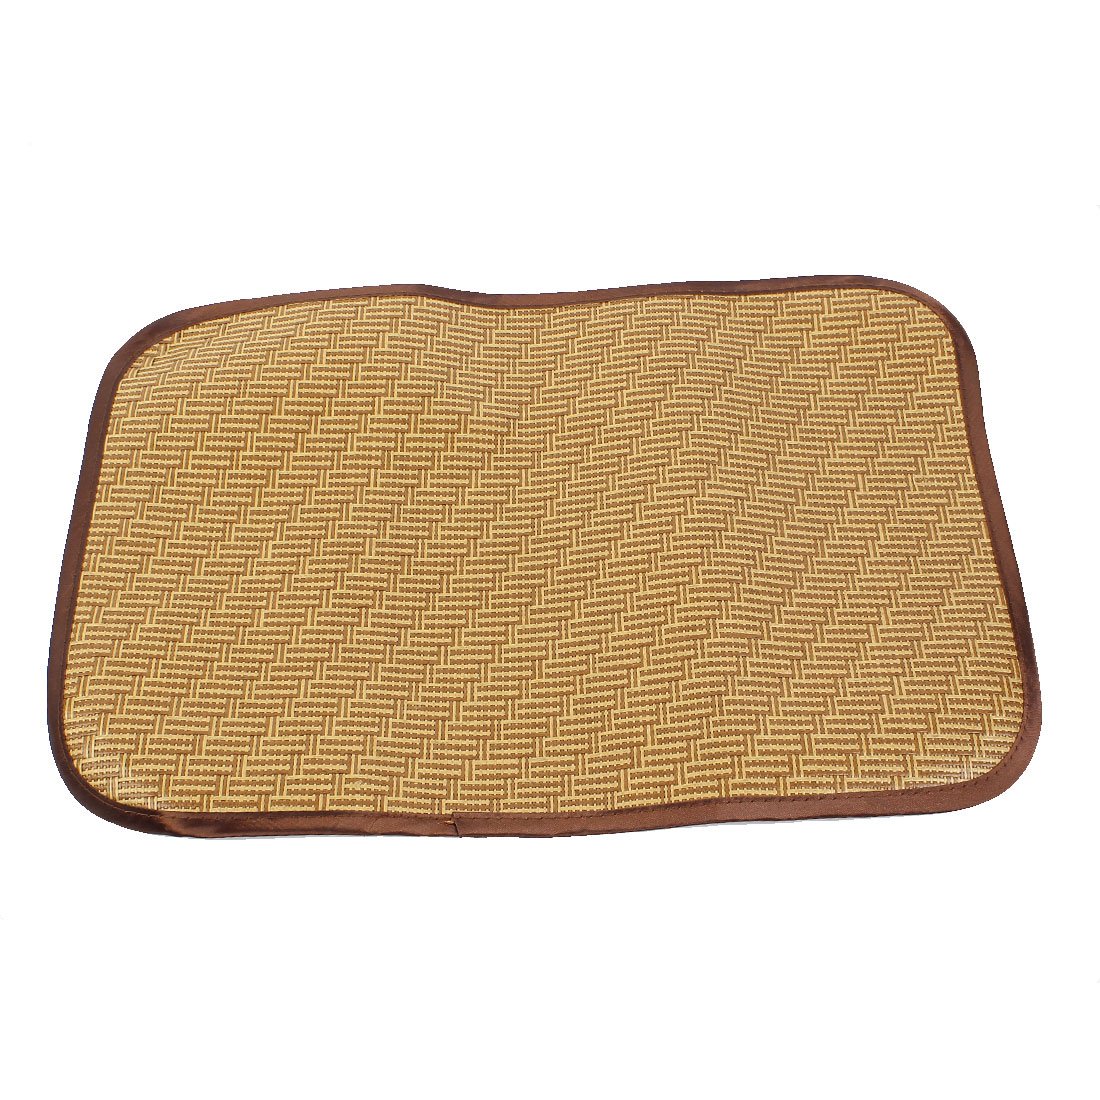 Picnic Patio 50cm x 35cm Rectangle Shape Pets Dog Puppy Cat Summer Sleeping Mat Pad Brown